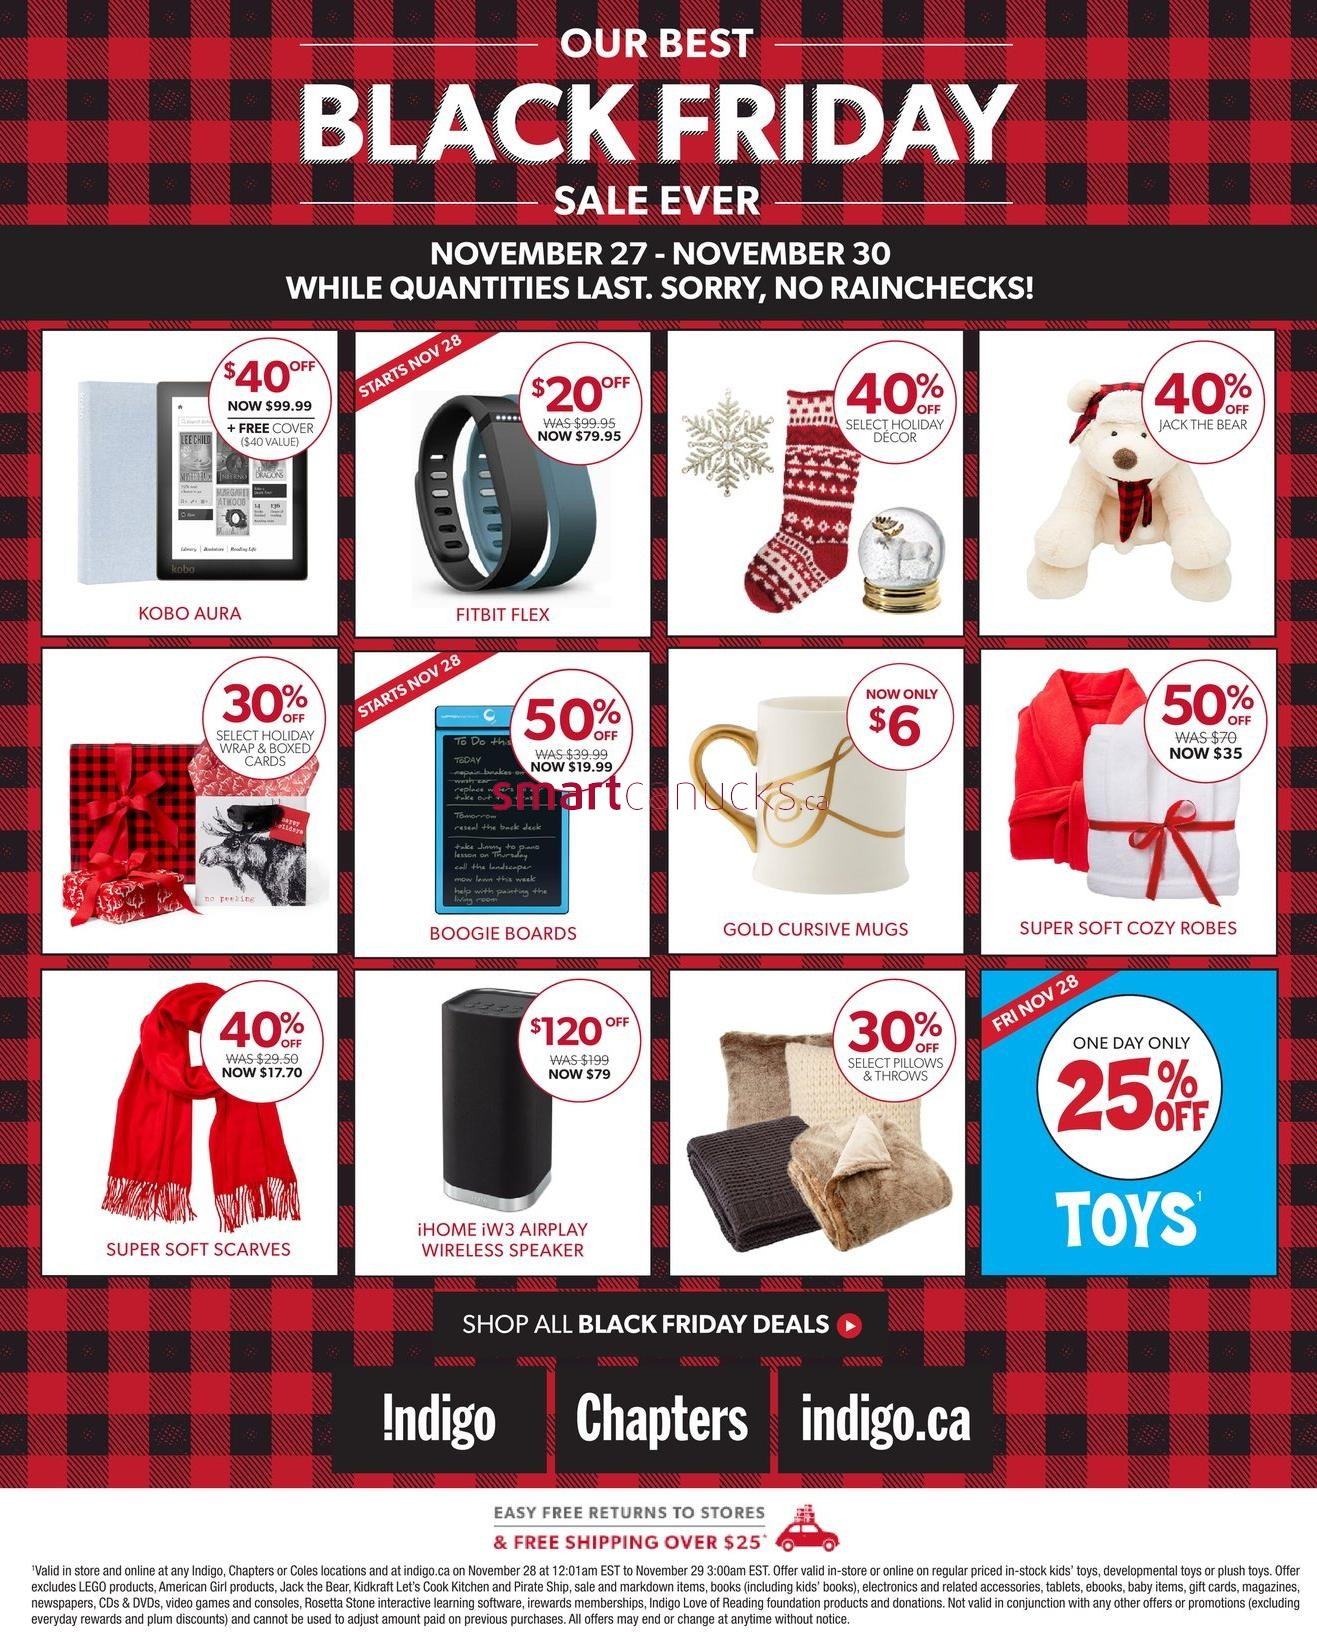 To give you the best chance for scoring the hottest deals, RedFlagDeals will showcase all the Canadian Black Friday ads and flyers for the in-store deals and the online deals. It lasts the whole weekend and is followed by the Cyber Monday one-day deals.